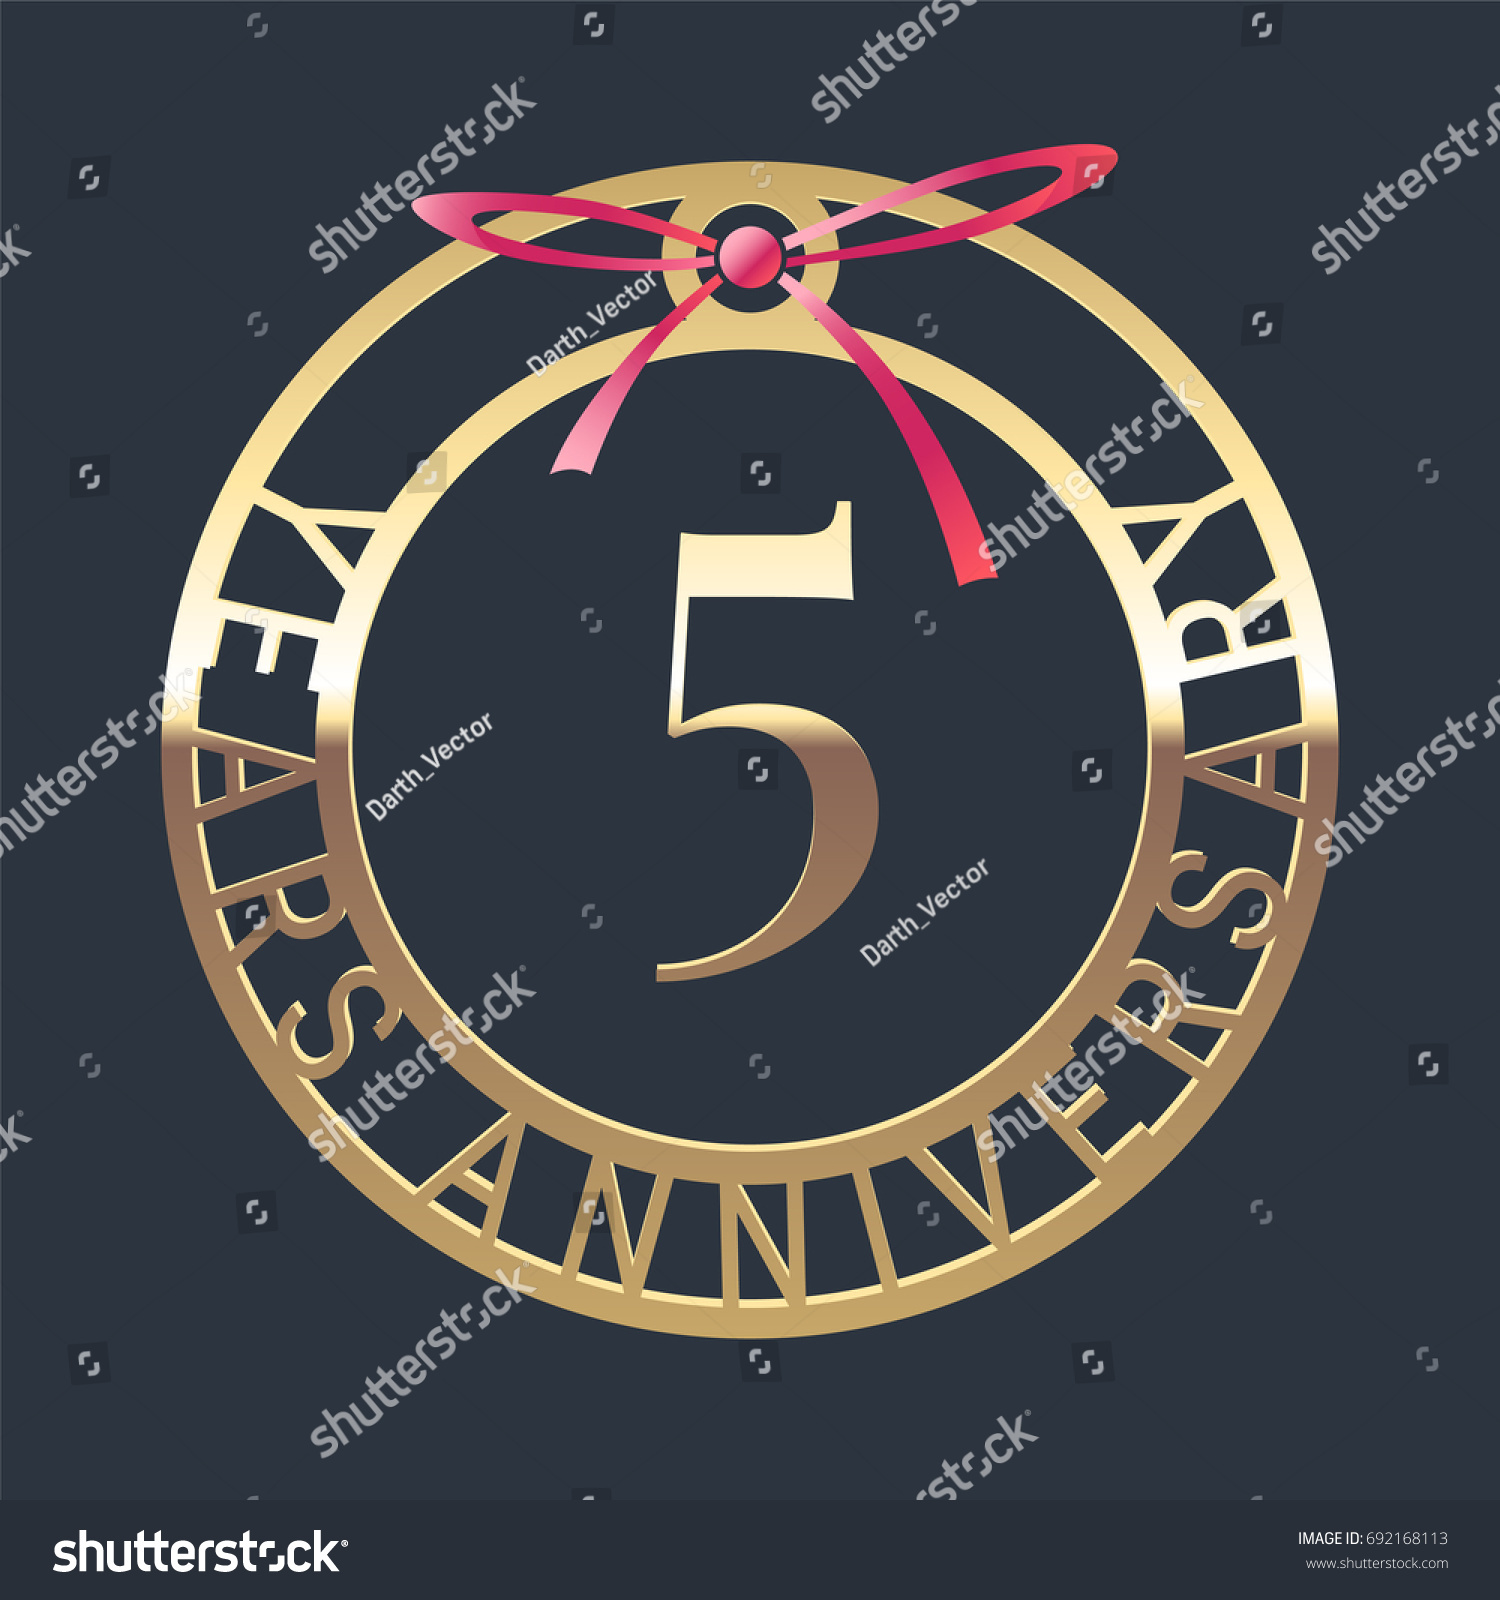 5 years anniversary vector icon symbol stock vector 692168113 5 years anniversary vector icon symbol graphic design element or logo with golden medal biocorpaavc Gallery